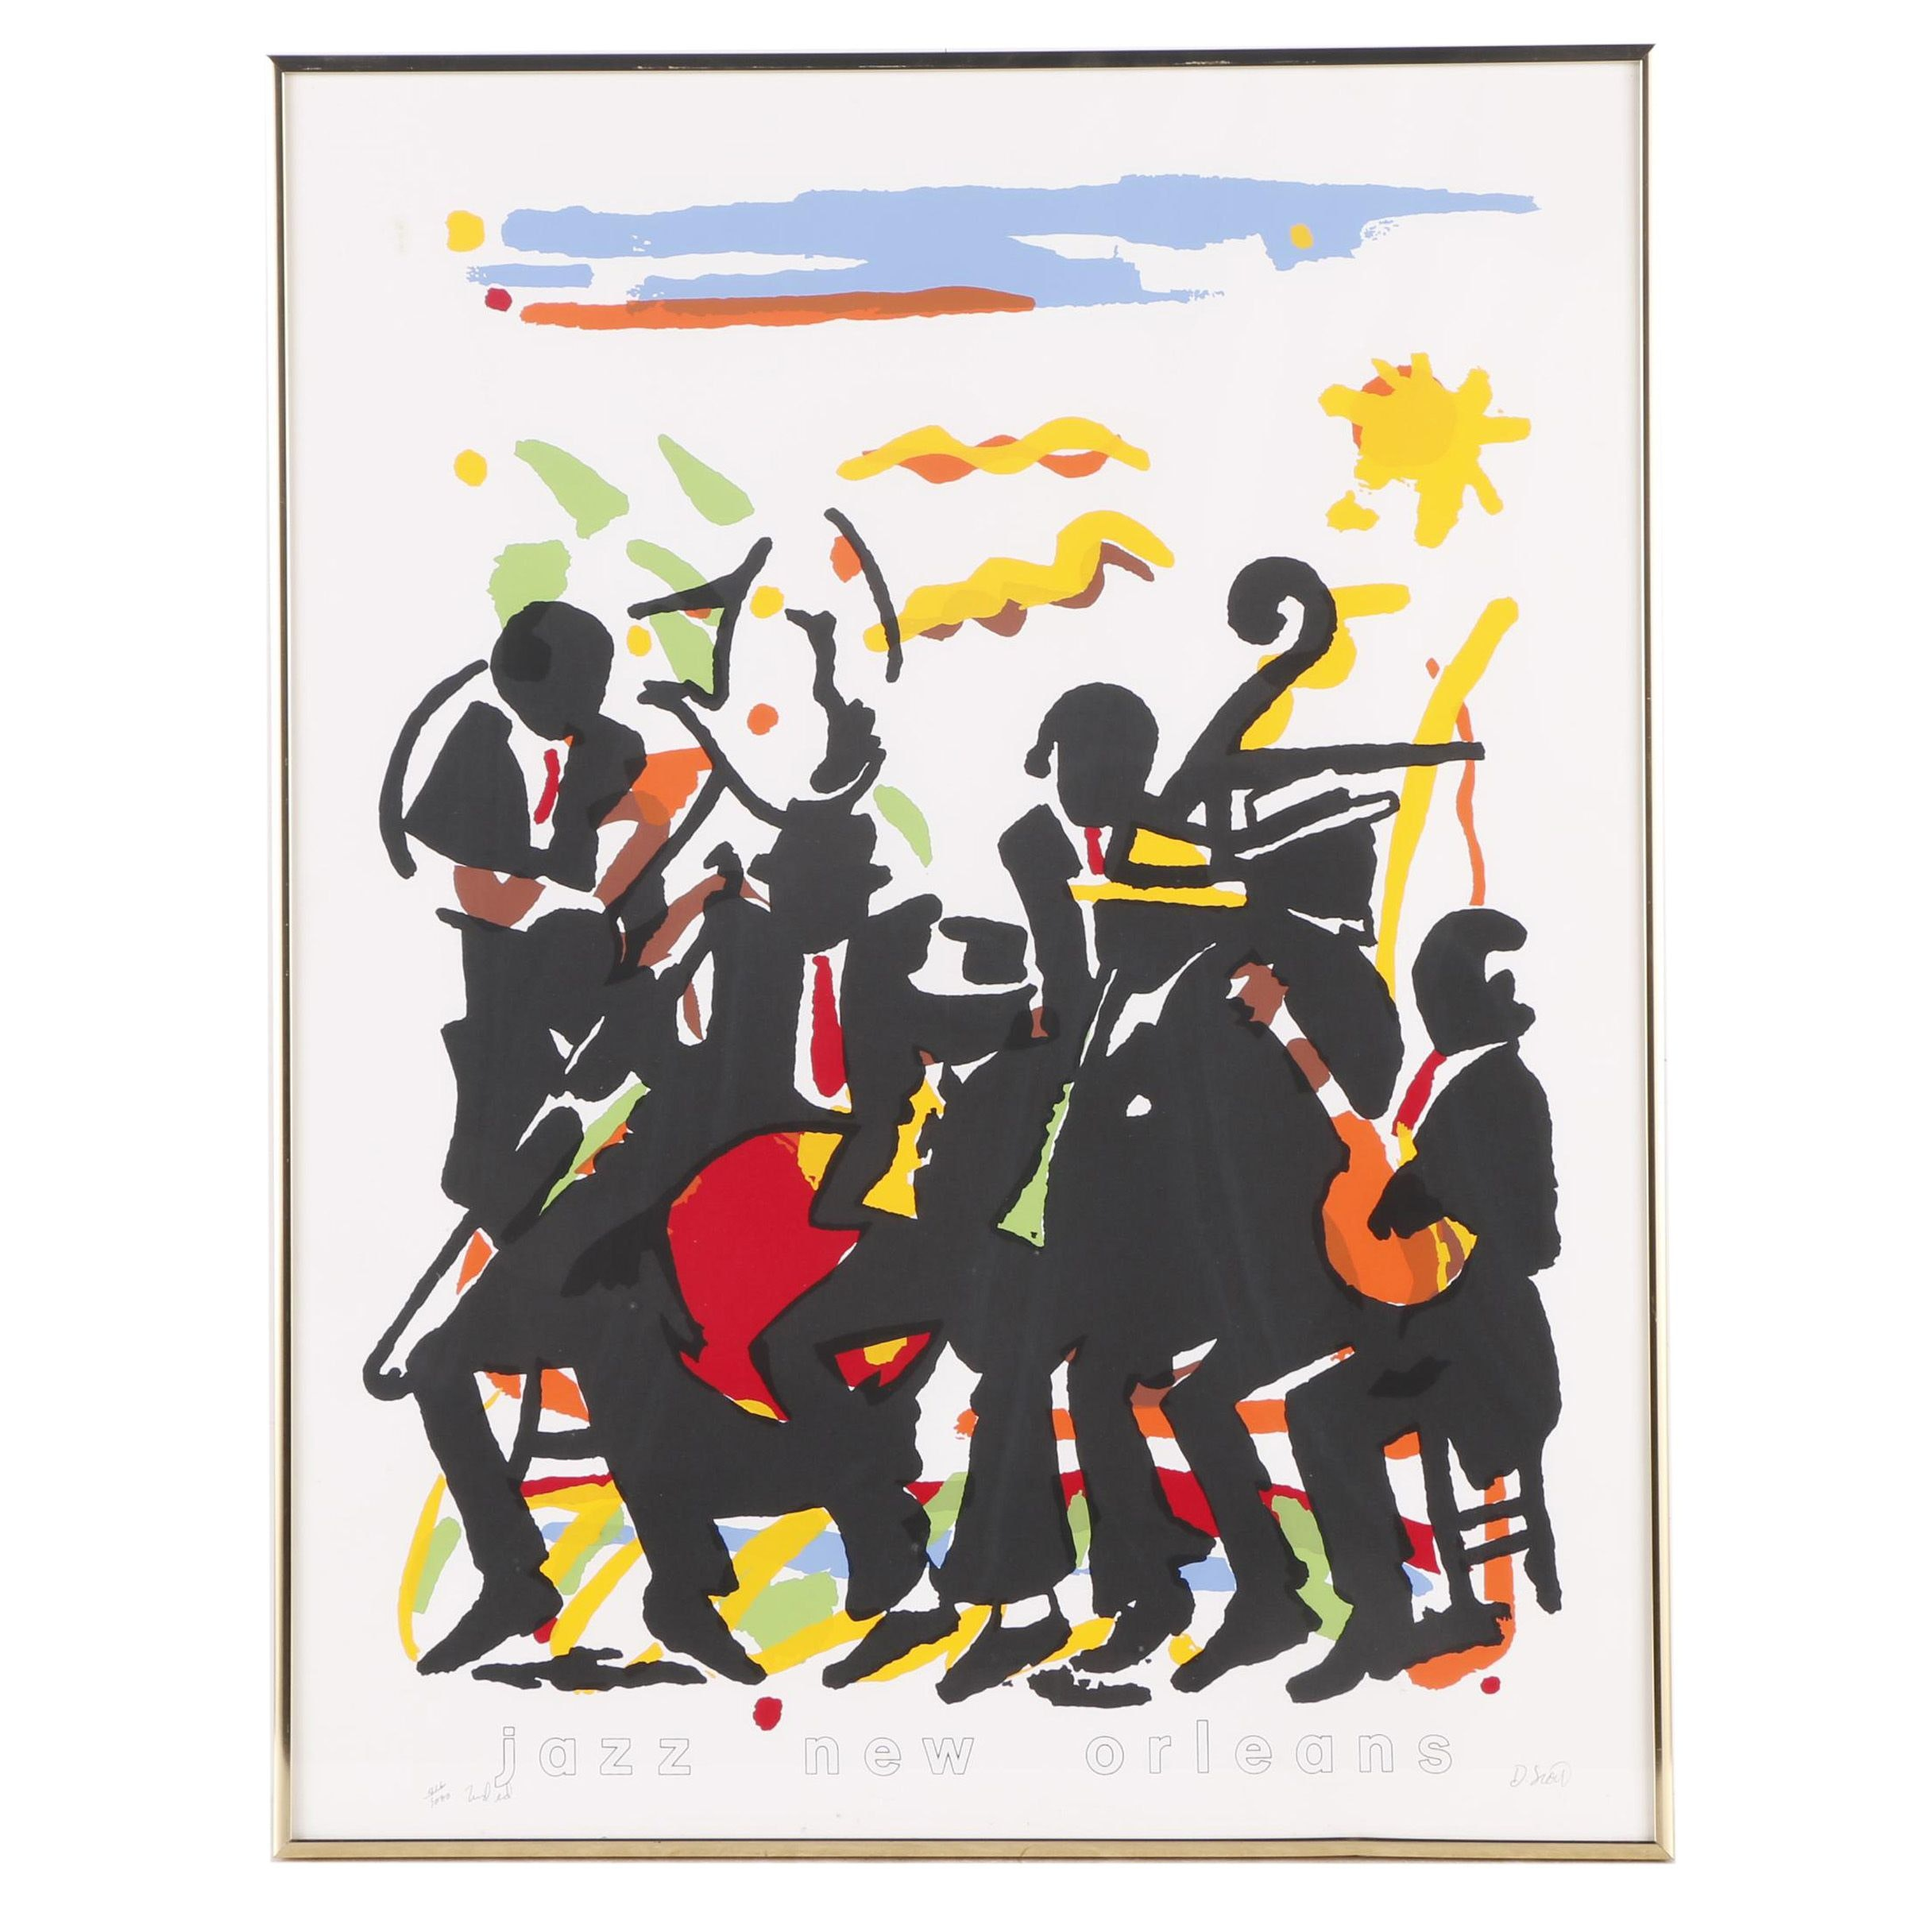 "D.S. Serigraphic Poster ""Jazz New Orleans"""